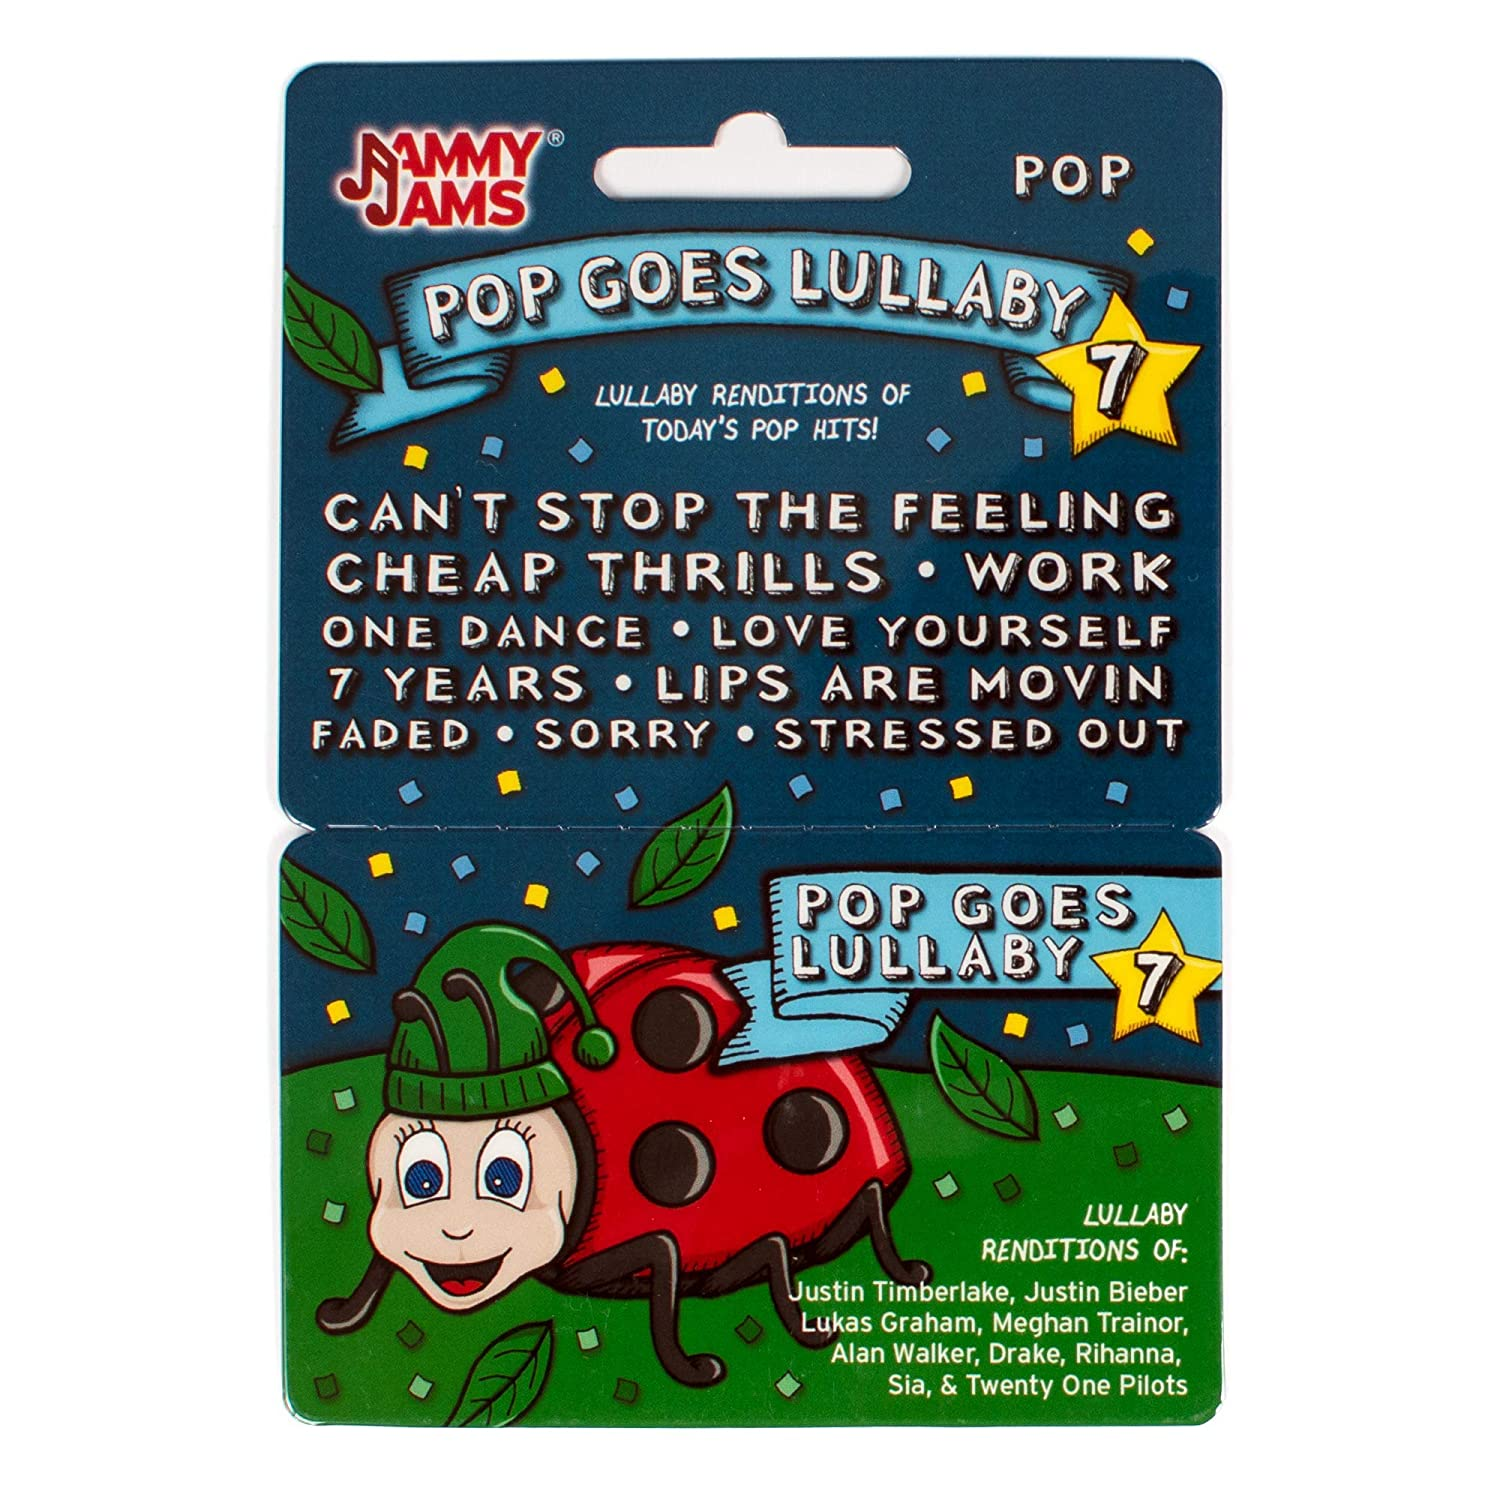 Pop Goes Lullaby Lullaby Renditions of Todays Pop Hits Jammy Jams Lullaby Download Card Full Album Download Card Greatest Naps, Vol. 1: The Best of Jammy Jams